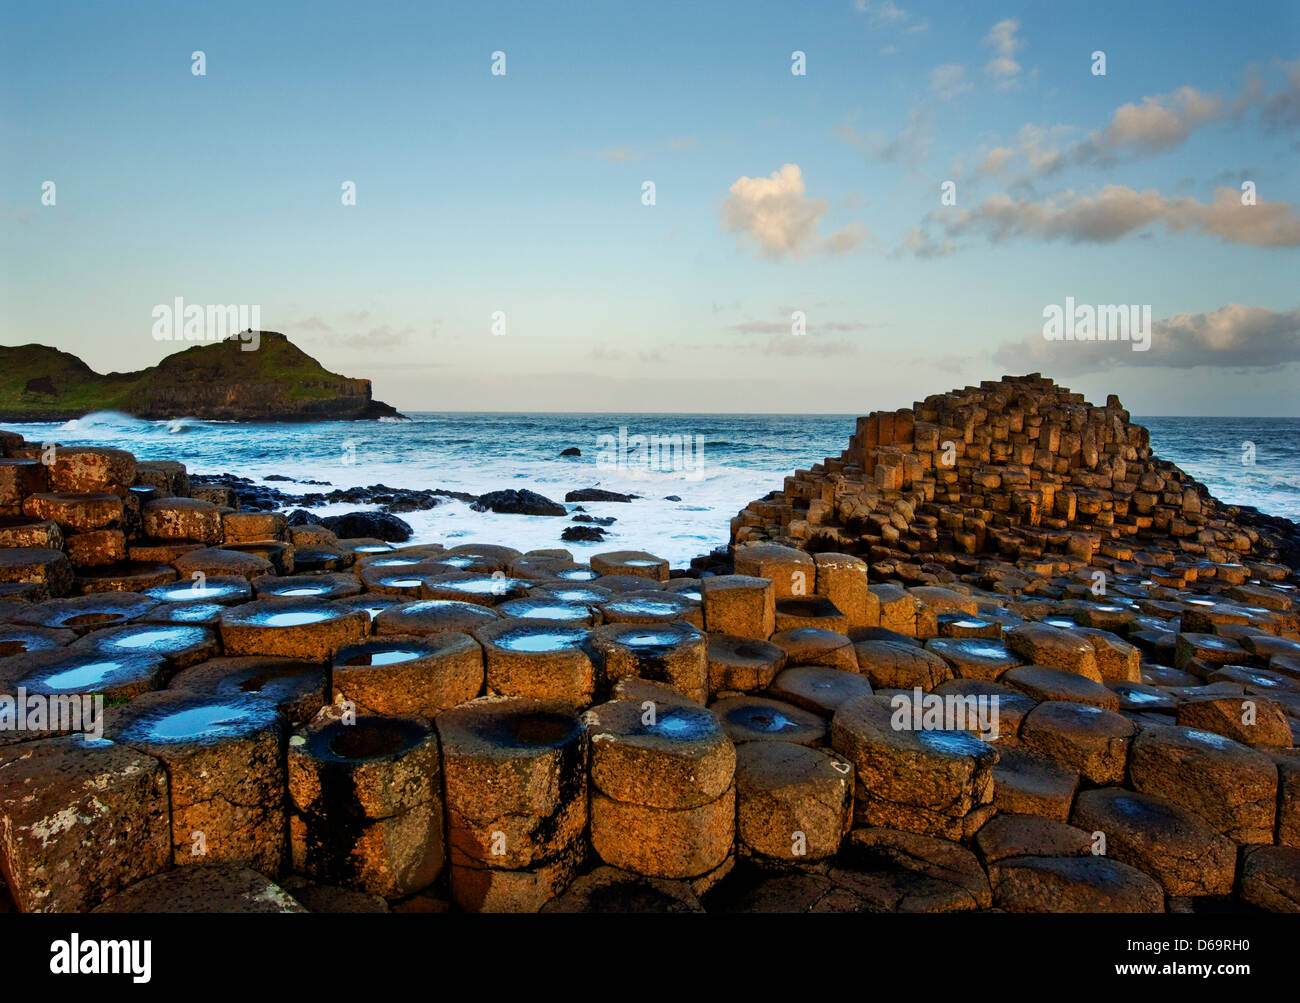 Rock formations in Giant?s Causeway, Antrim, Northern Ireland - Stock Image